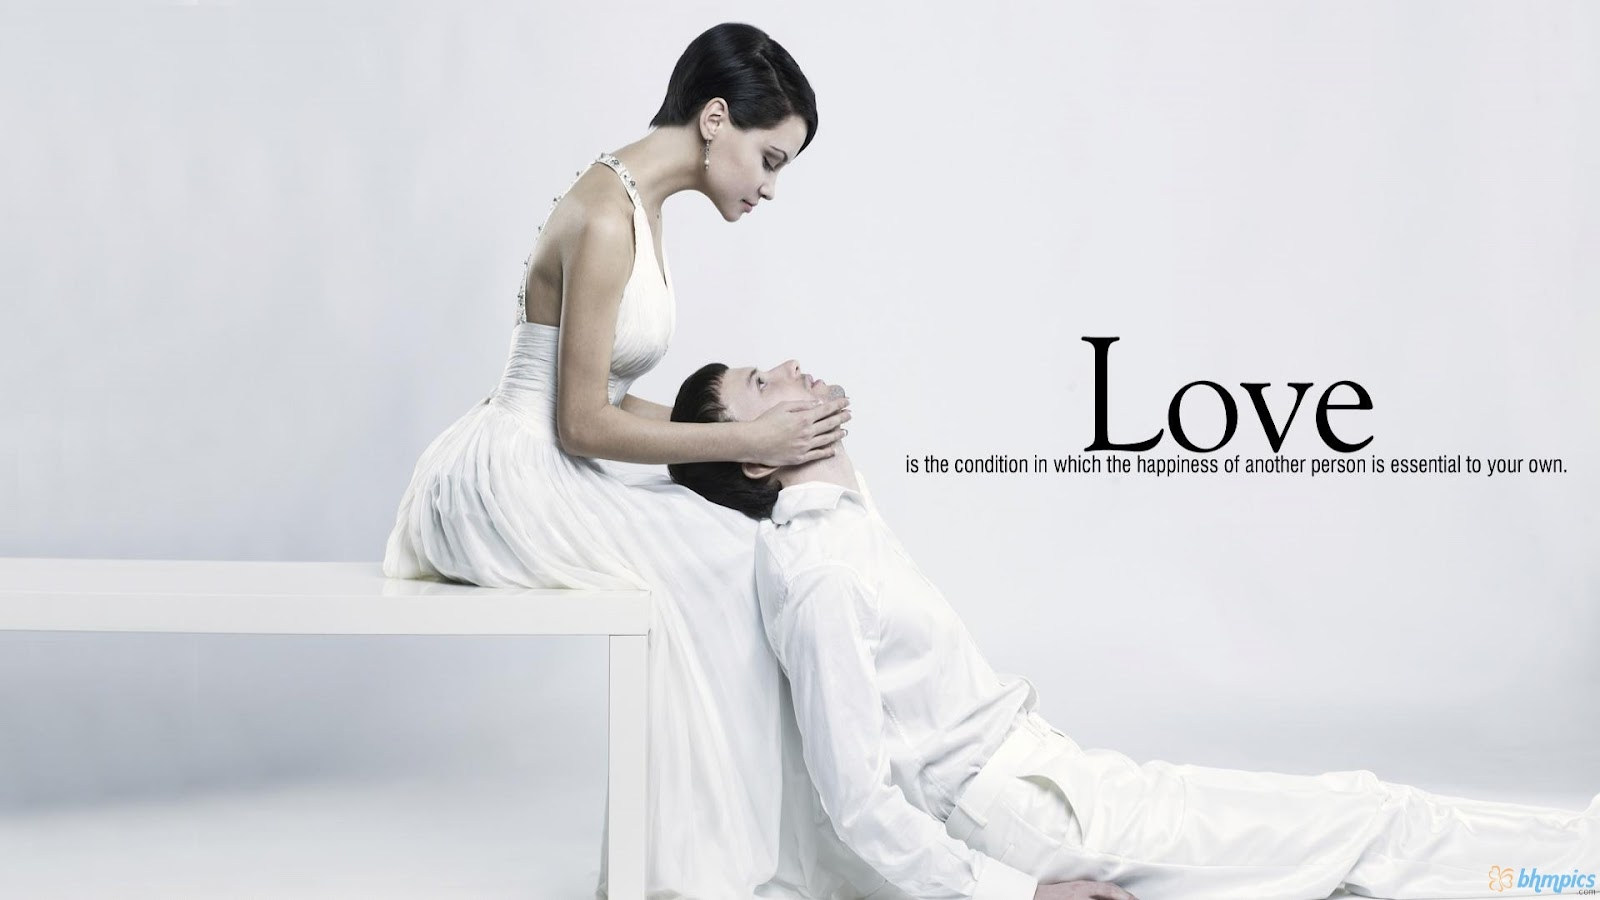 Lg Love couple Wallpaper : Wallpaper collection For Your computer and Mobile Phones: New Romantic Love Words And Quotations ...